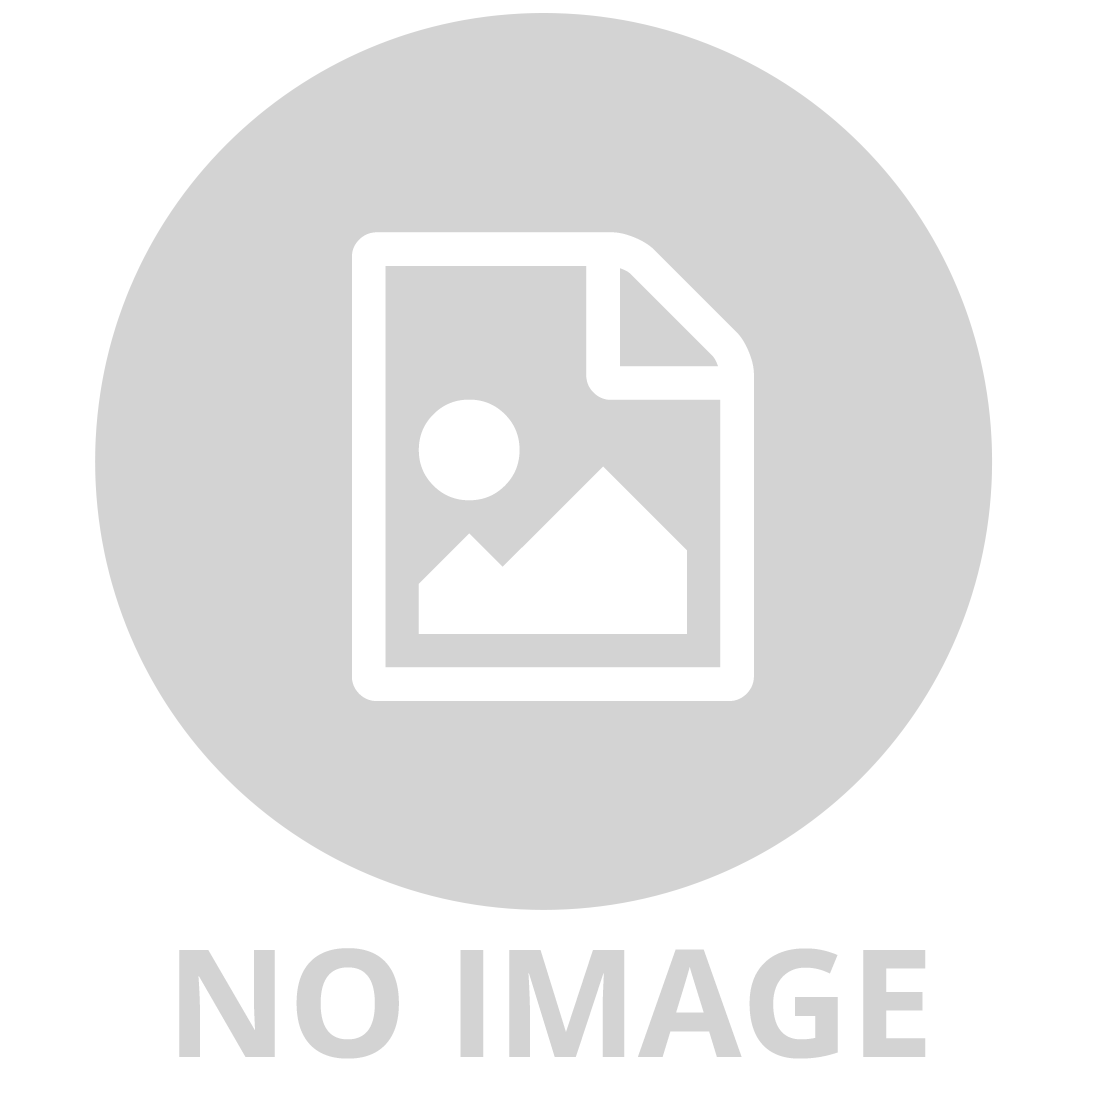 WASJIG IMAGINE #2 - IF THE WHEEL HAD NOT BEEN INVENTED!